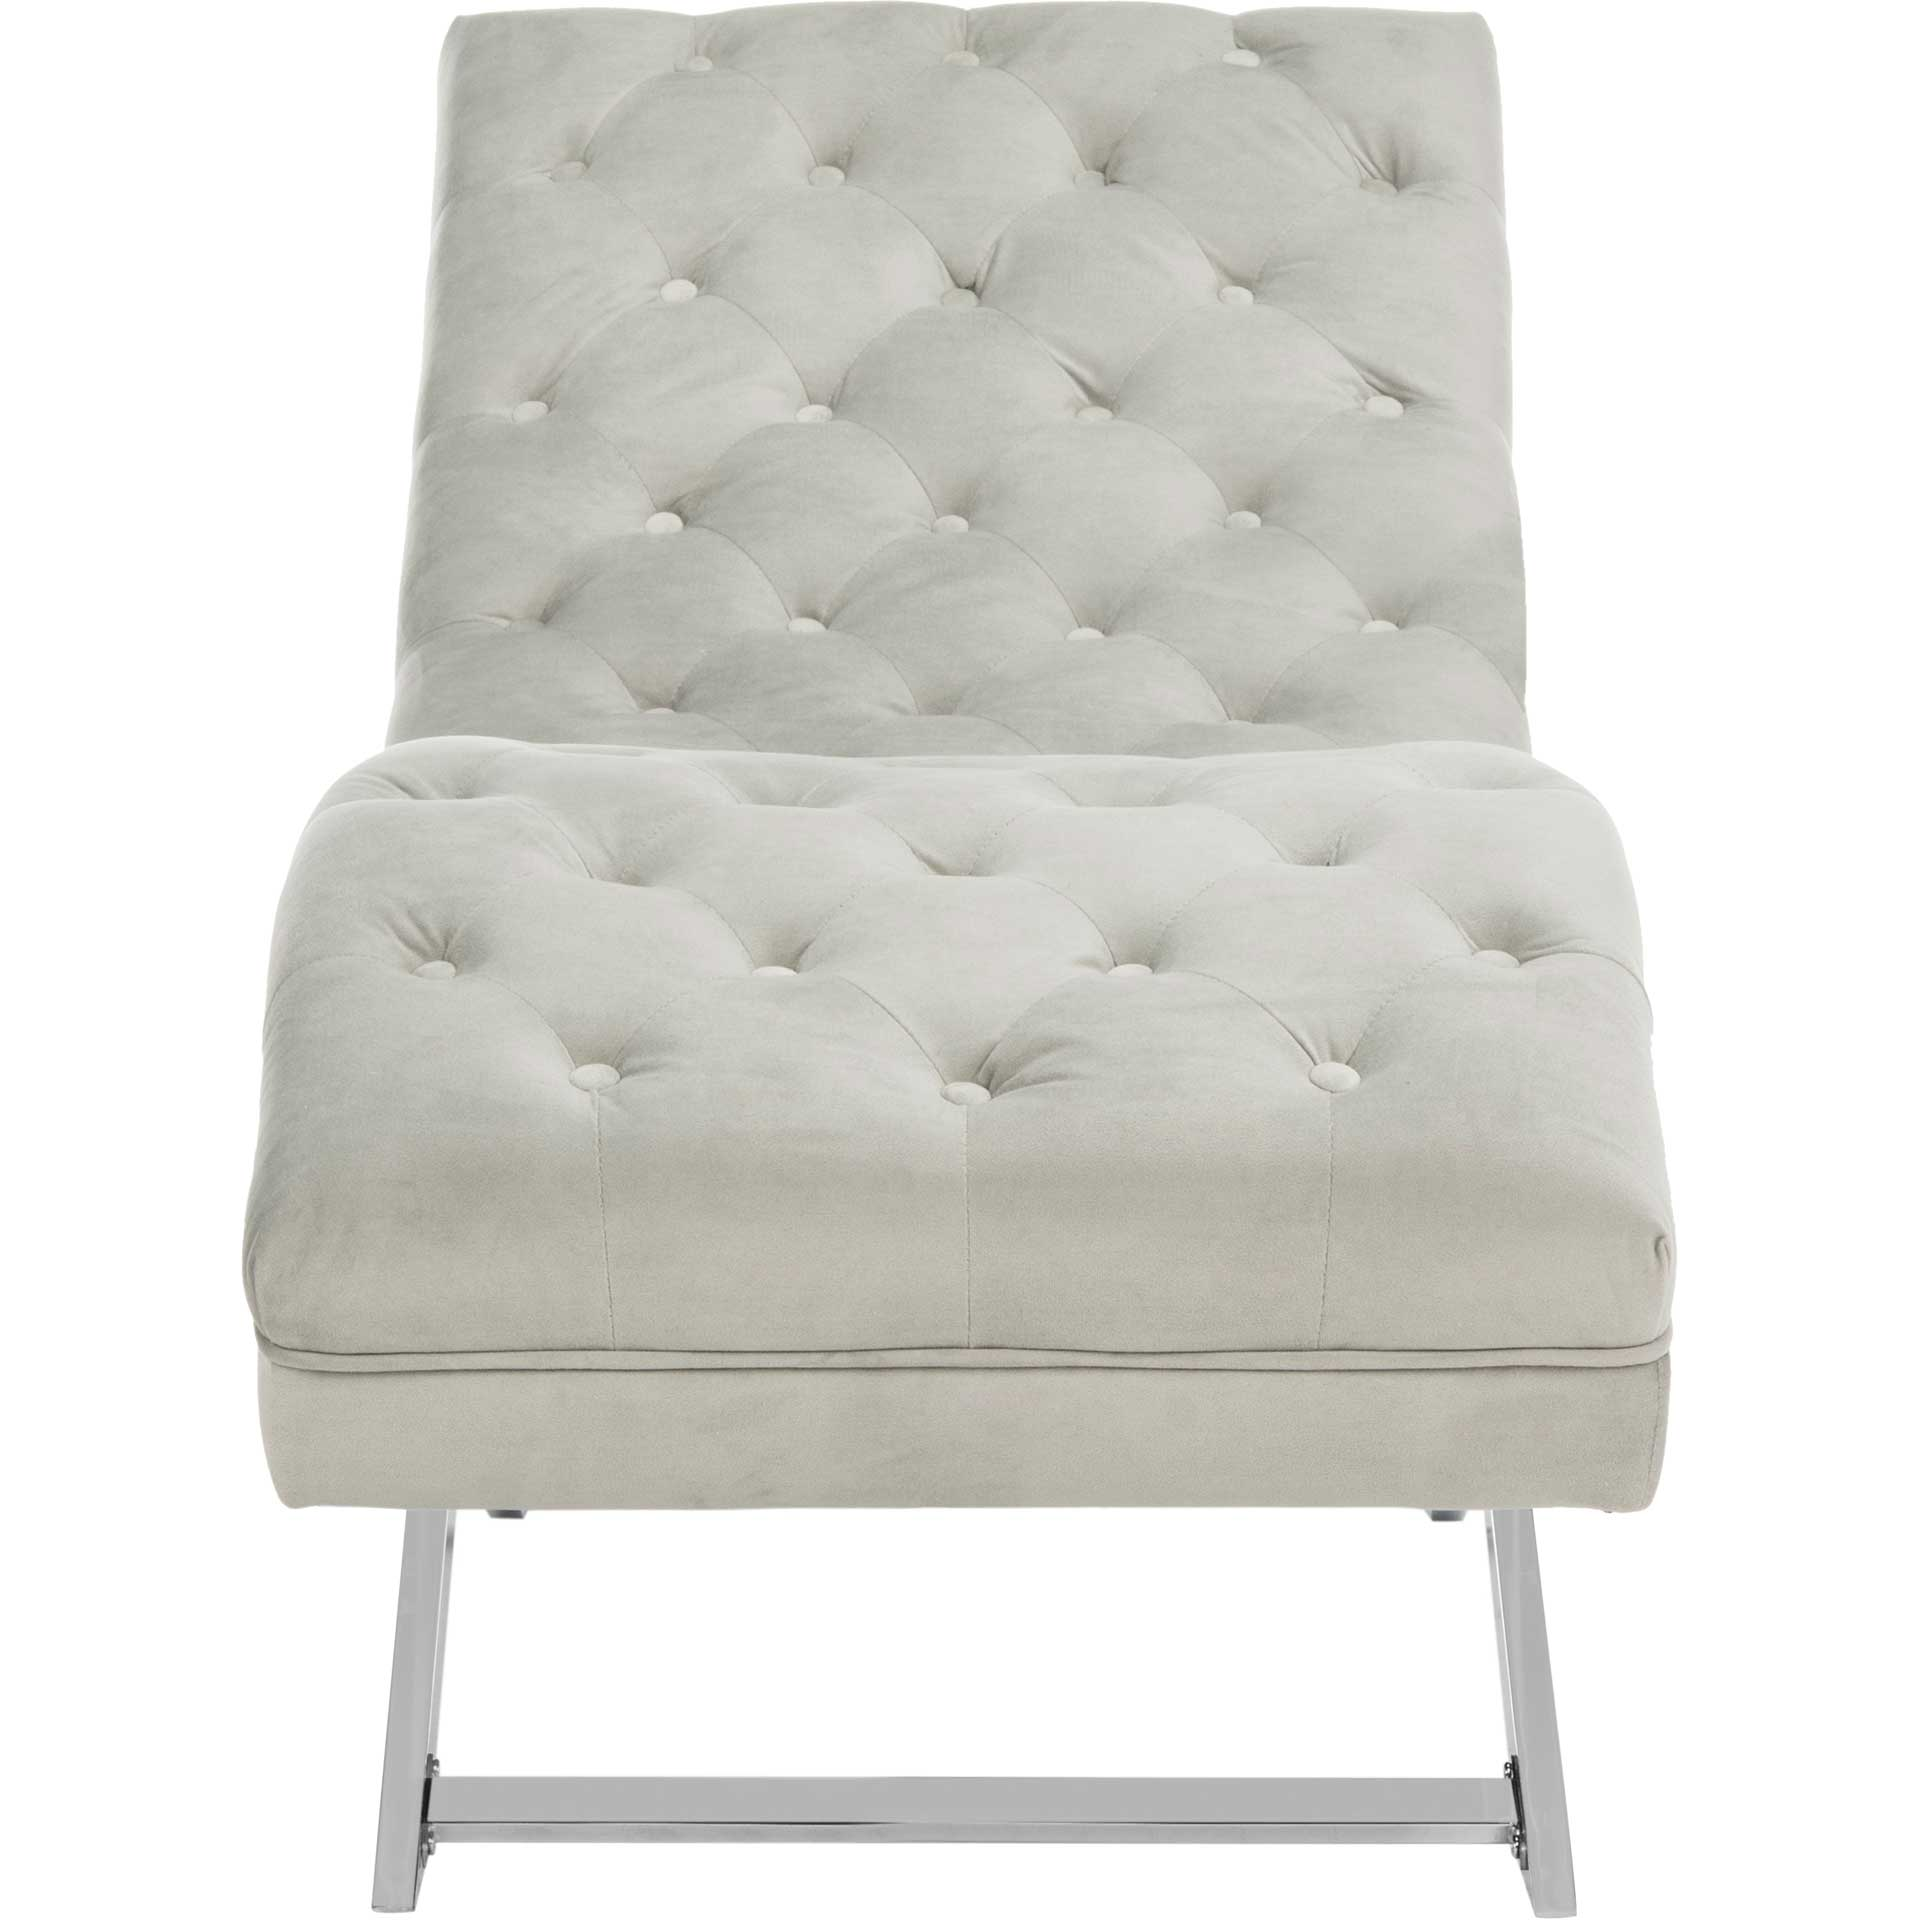 Morph Chaise With Headrest Pillow Gray